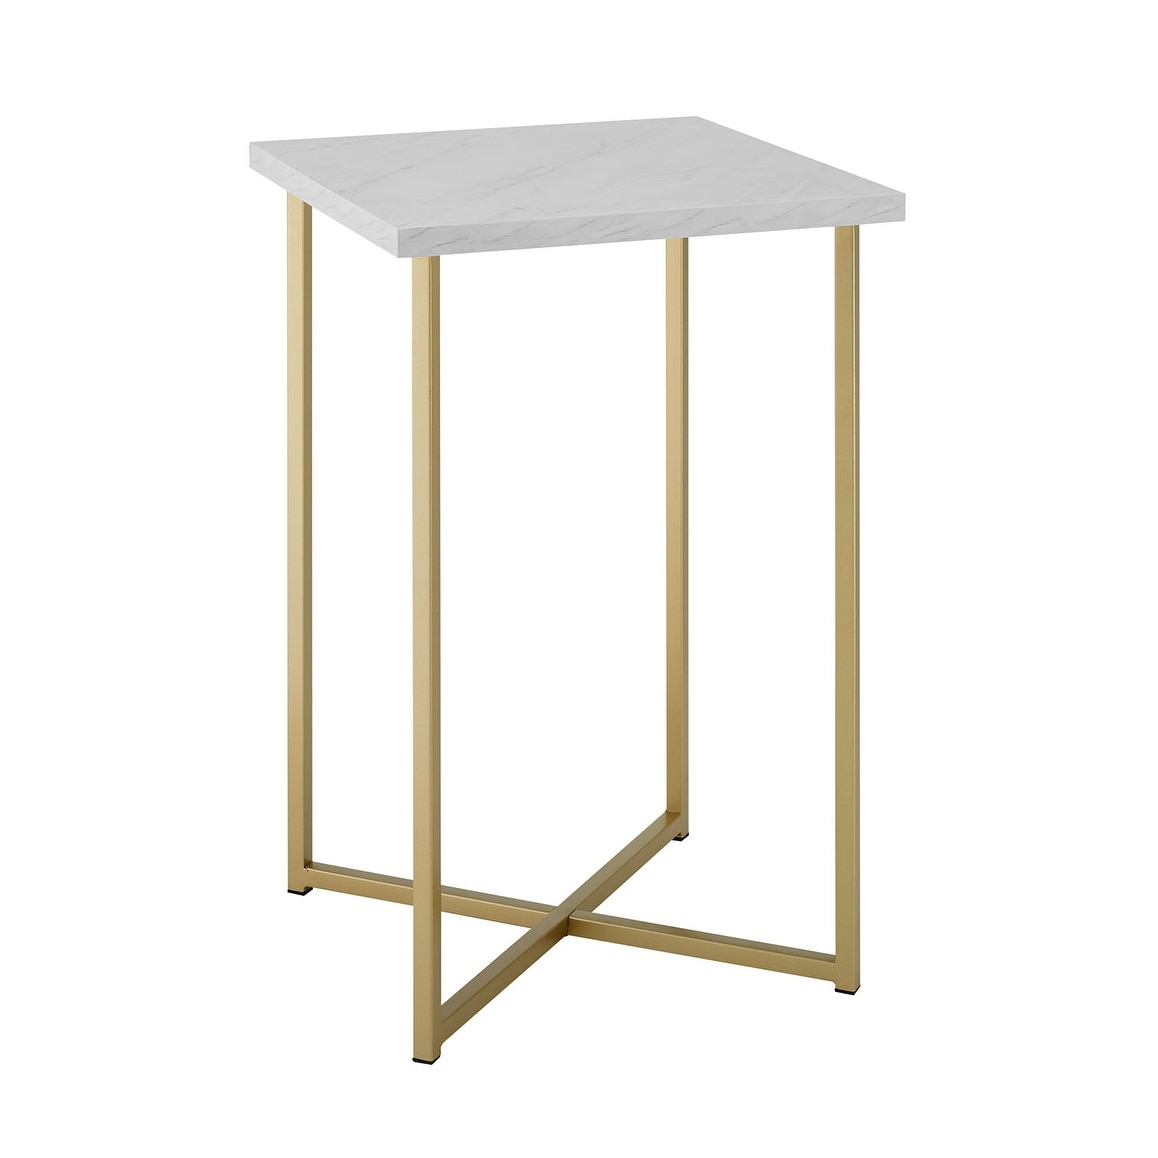 Offex 16 Glam Accent Square Side Table With White Marble Top And Gold Legs Free Shipping Today 23571335